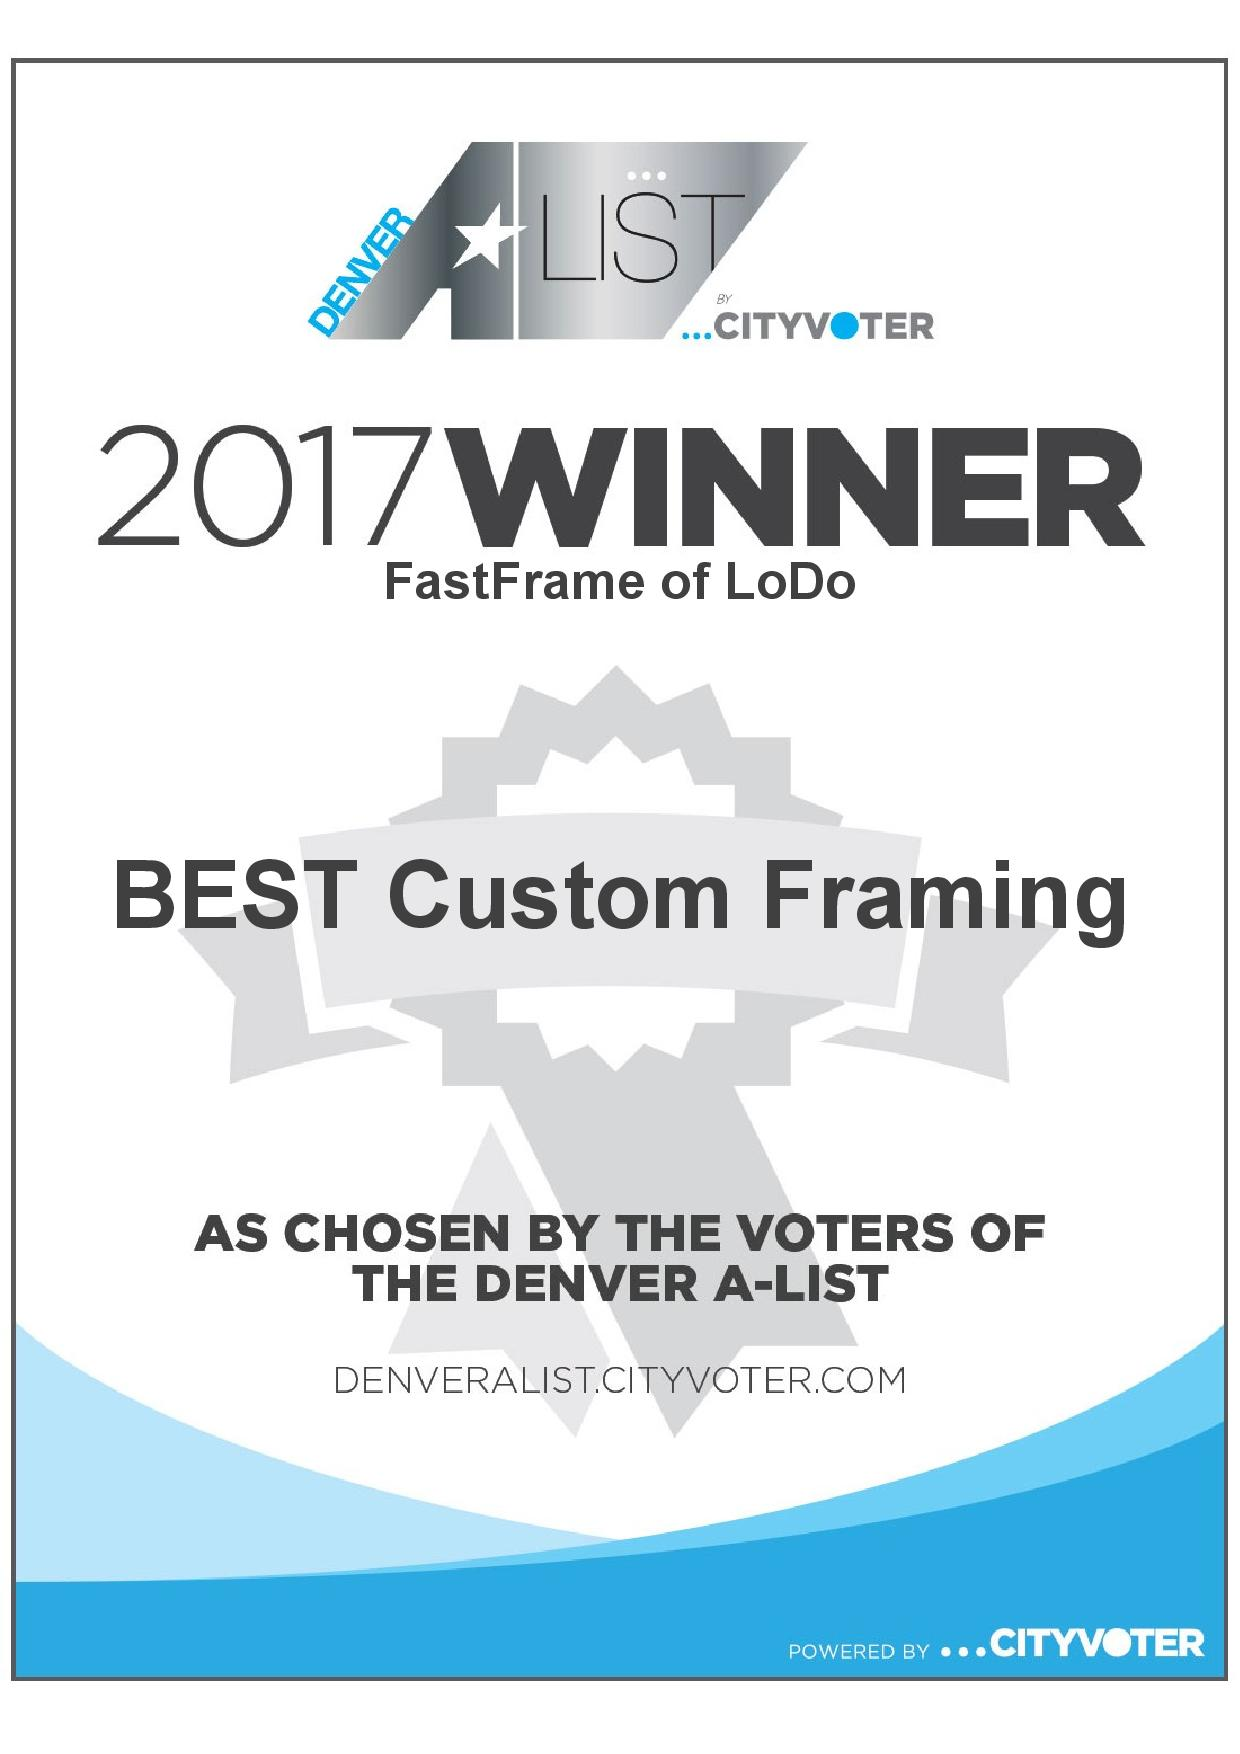 FastFrame of LoDo - Voted Best Custom Framing in Denver!